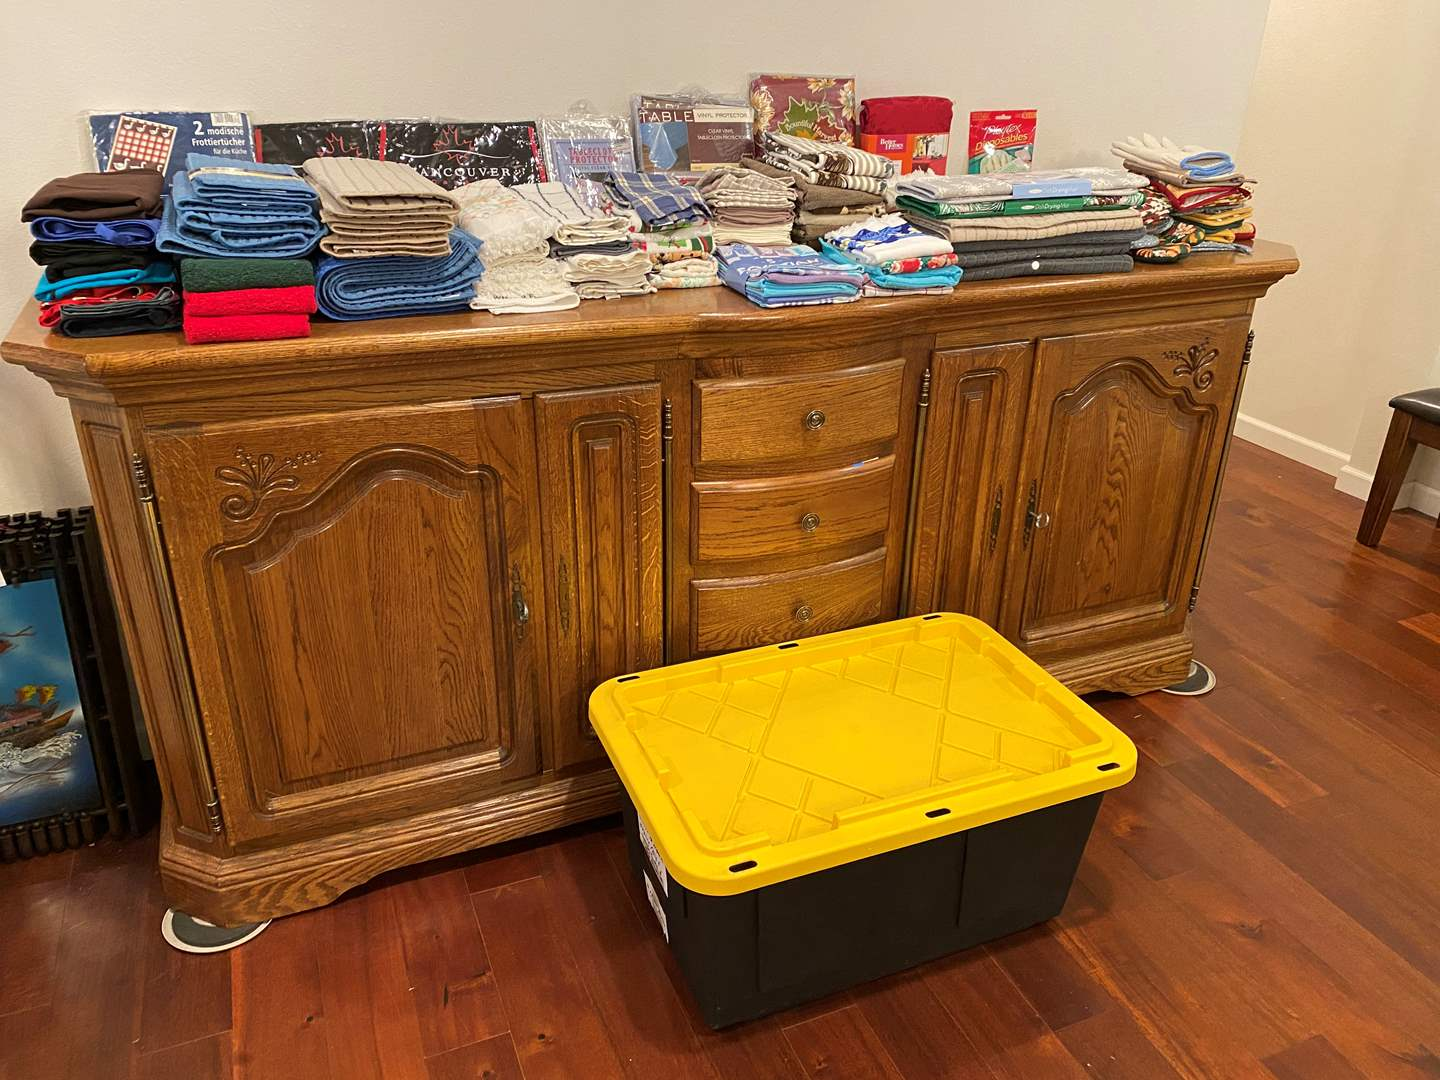 Lot # 152 - Large Bin Full of New & Used Pot Holders, Table Cloths, Drying Mats, Dish Towels, Aprons & More.. (main image)